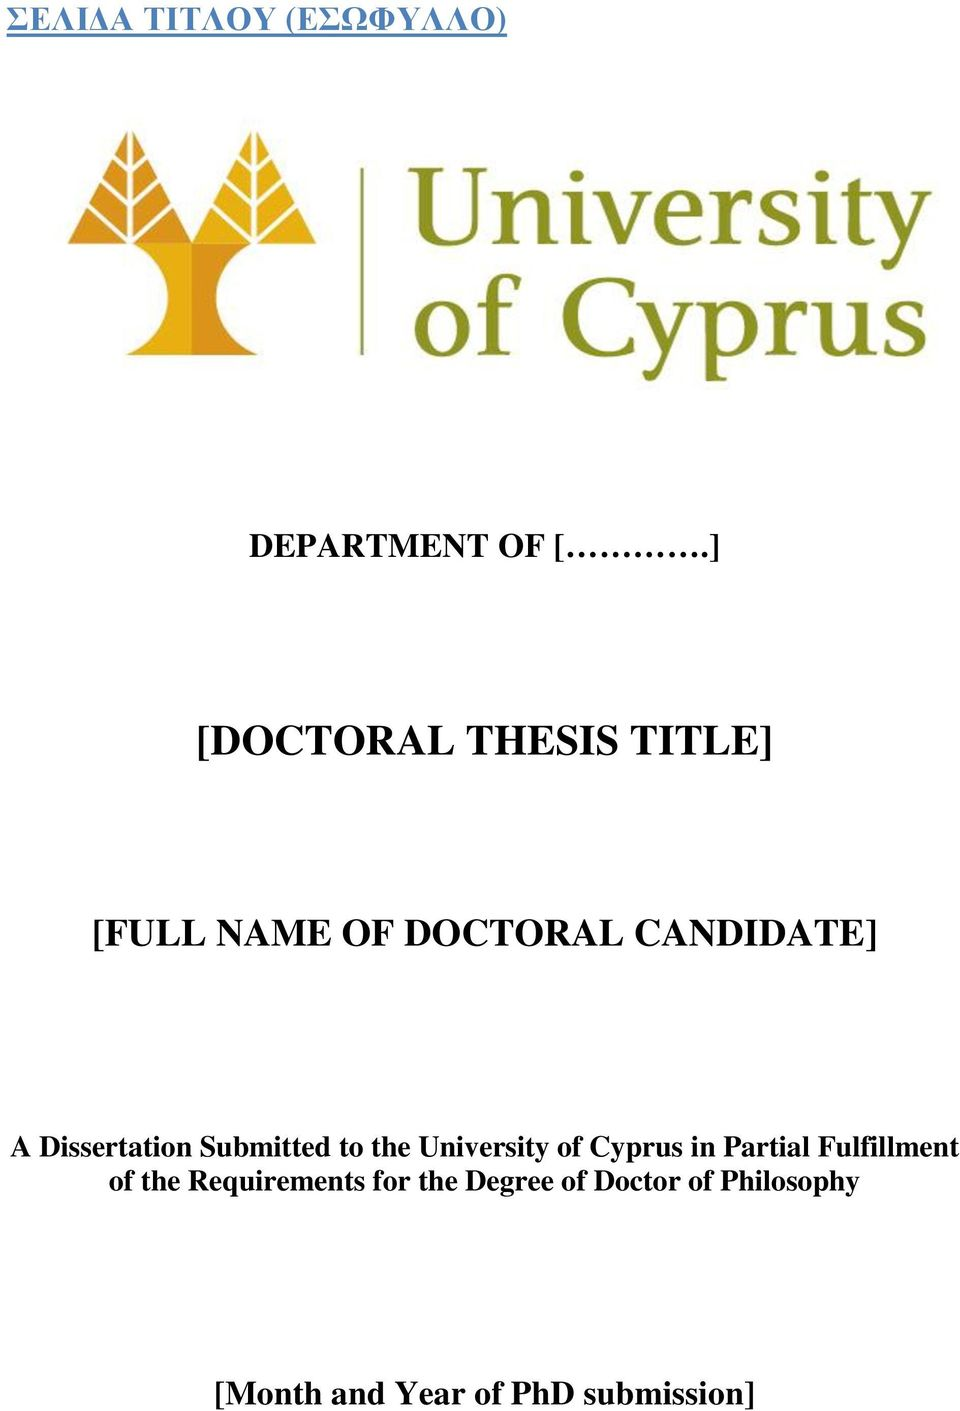 Dissertation Submitted to the University of Cyprus in Partial